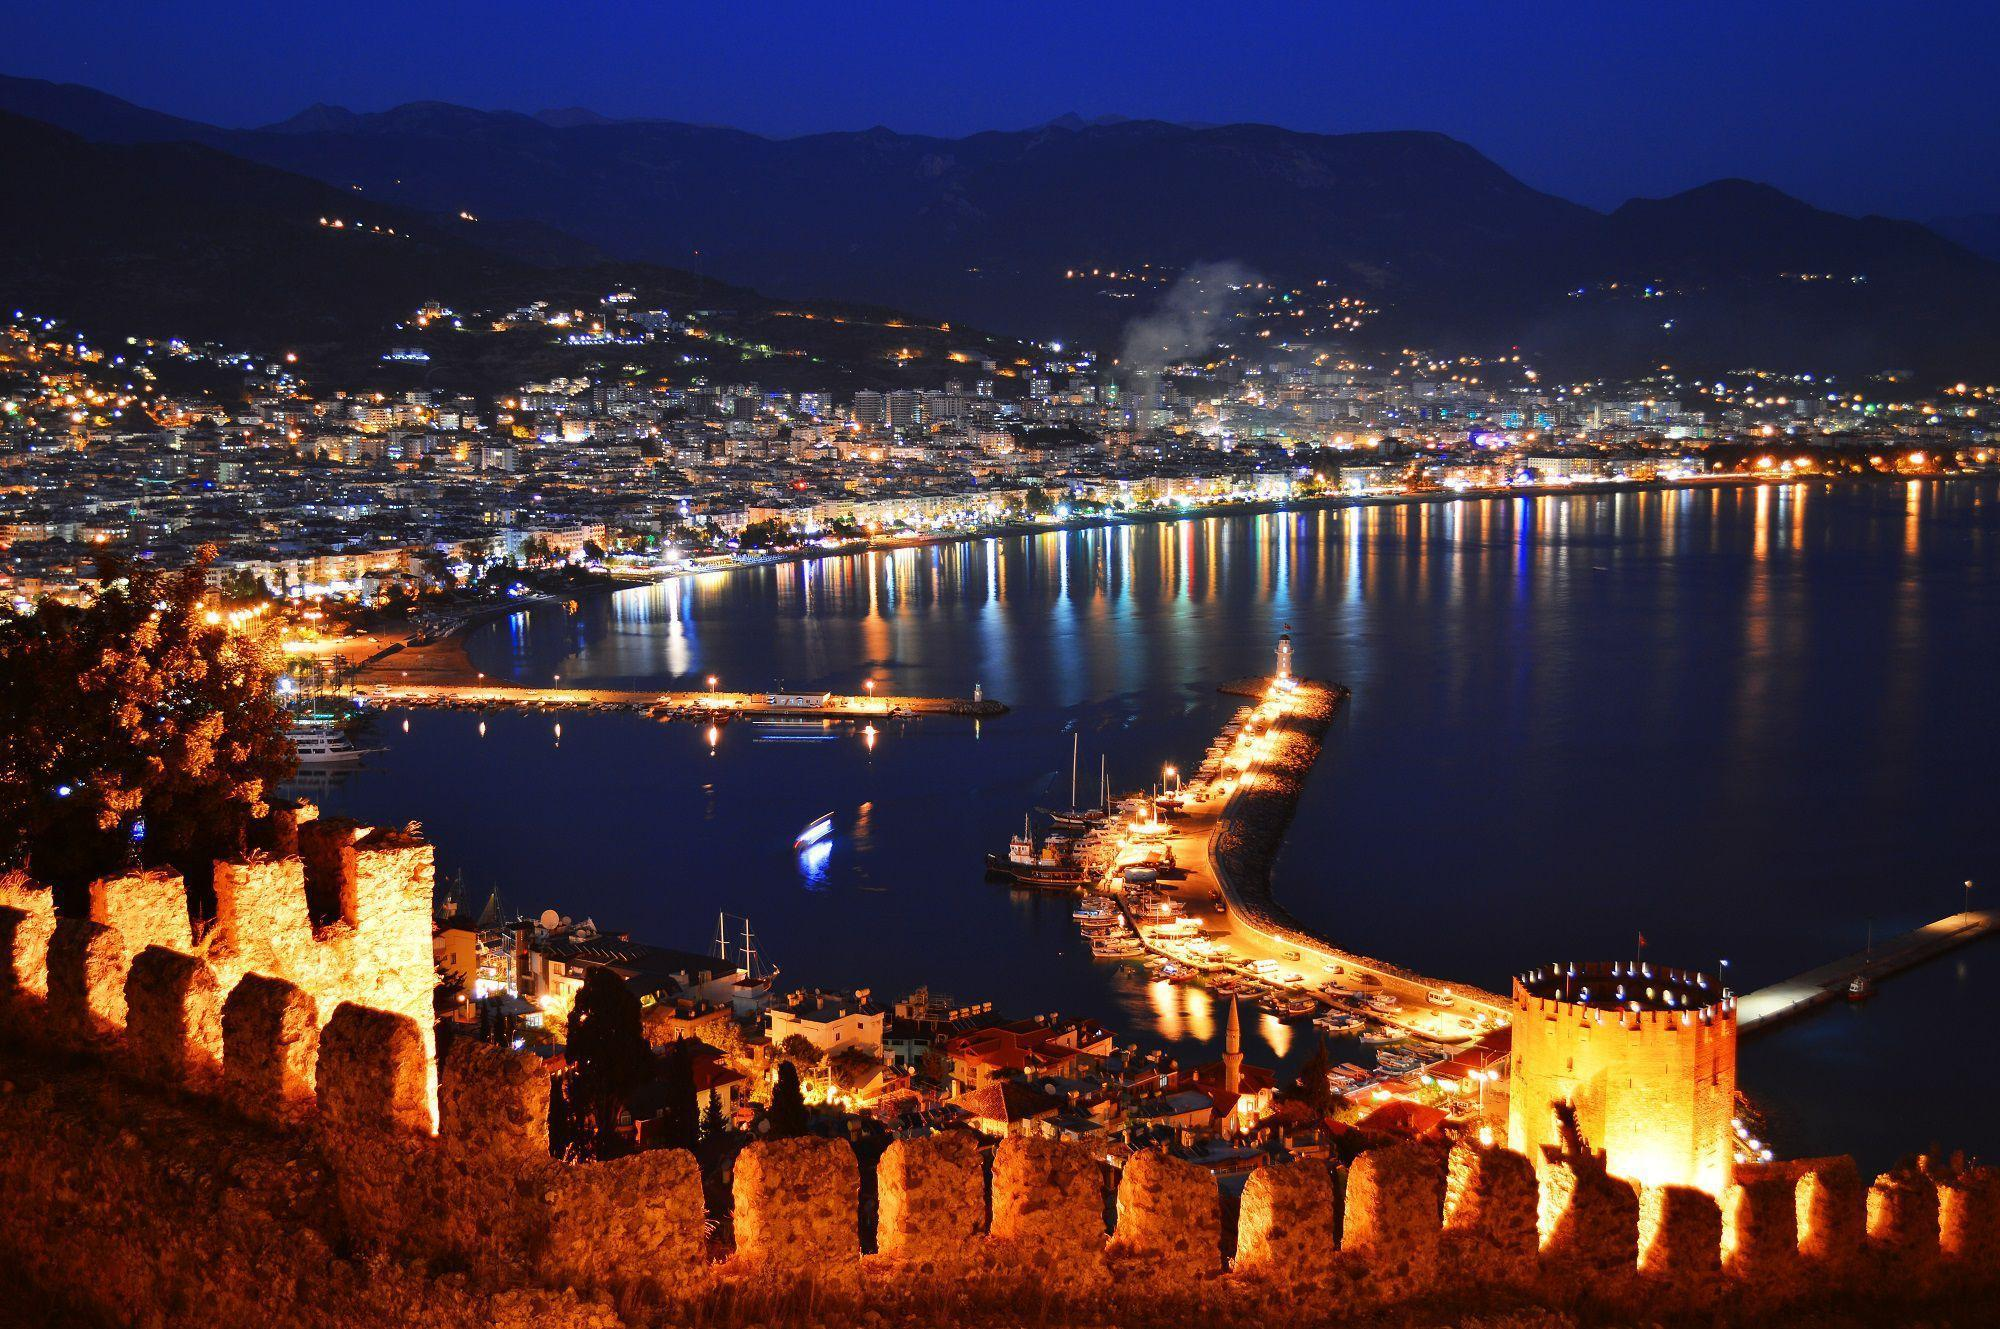 Alanya Turkey Wallpaper Backgrounds